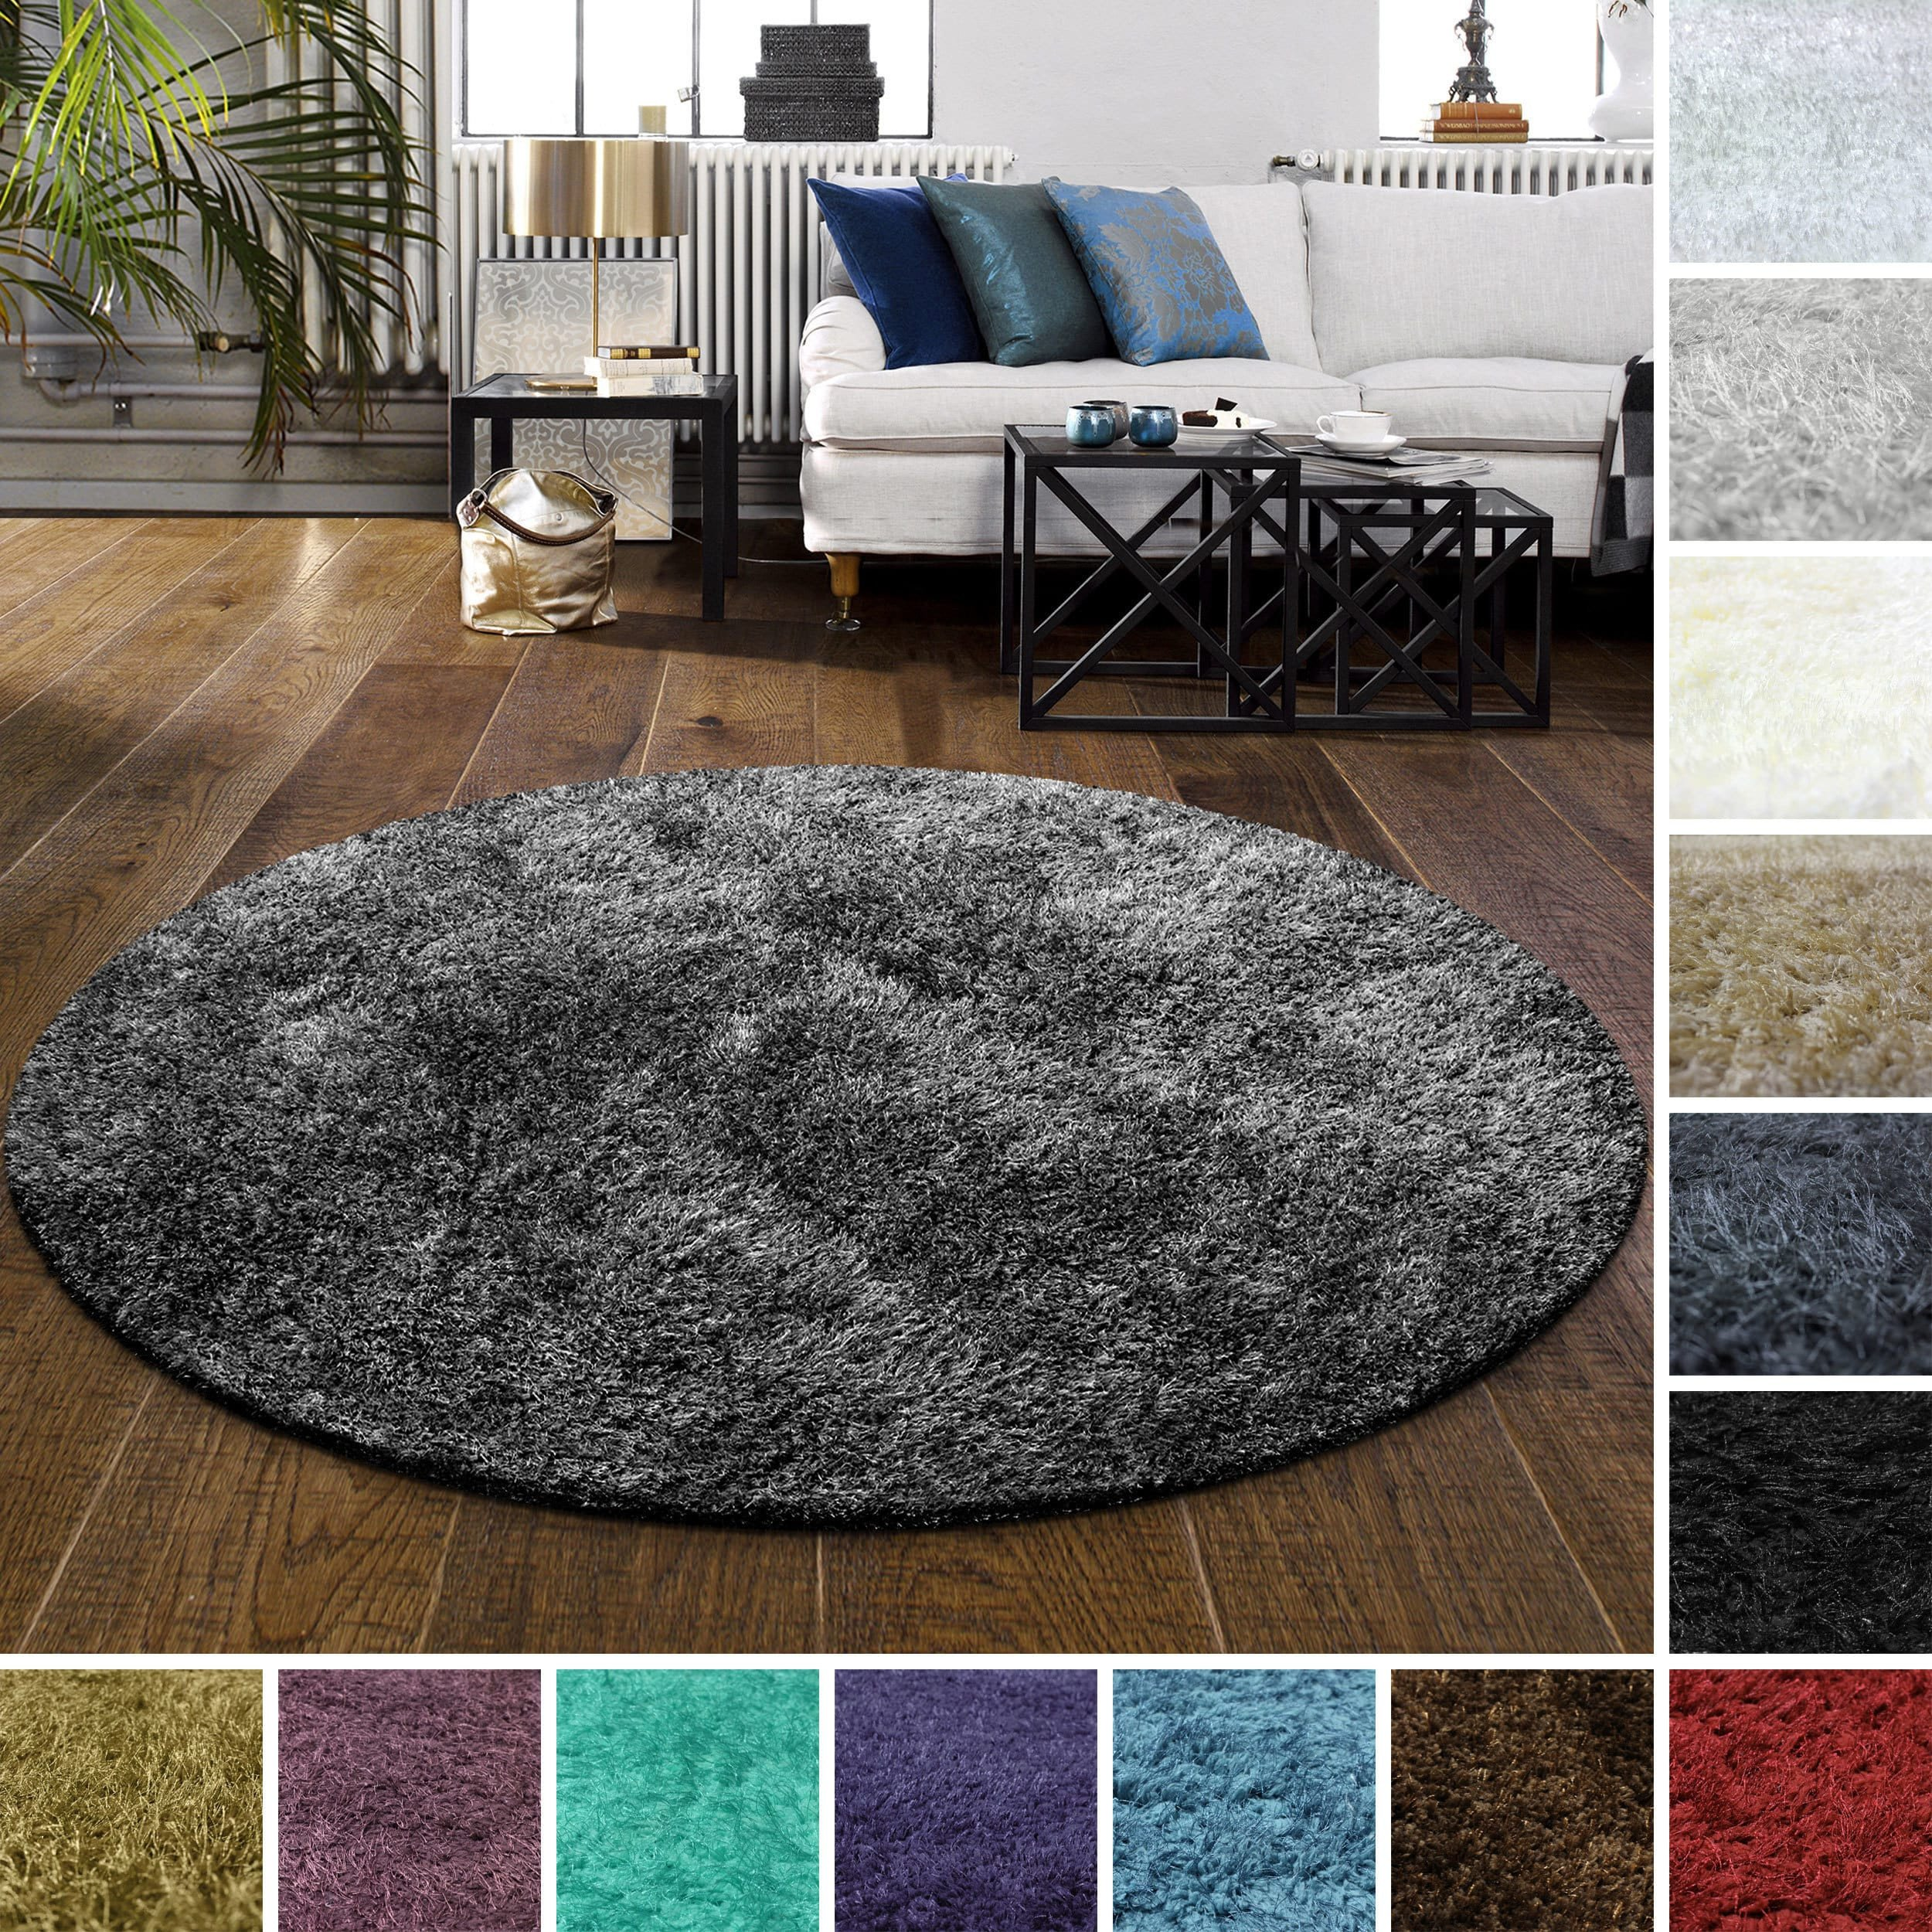 Furry Rugs for Bedroom New Superior Elegant Plush Cozy and Hand Woven Round Shag Rug